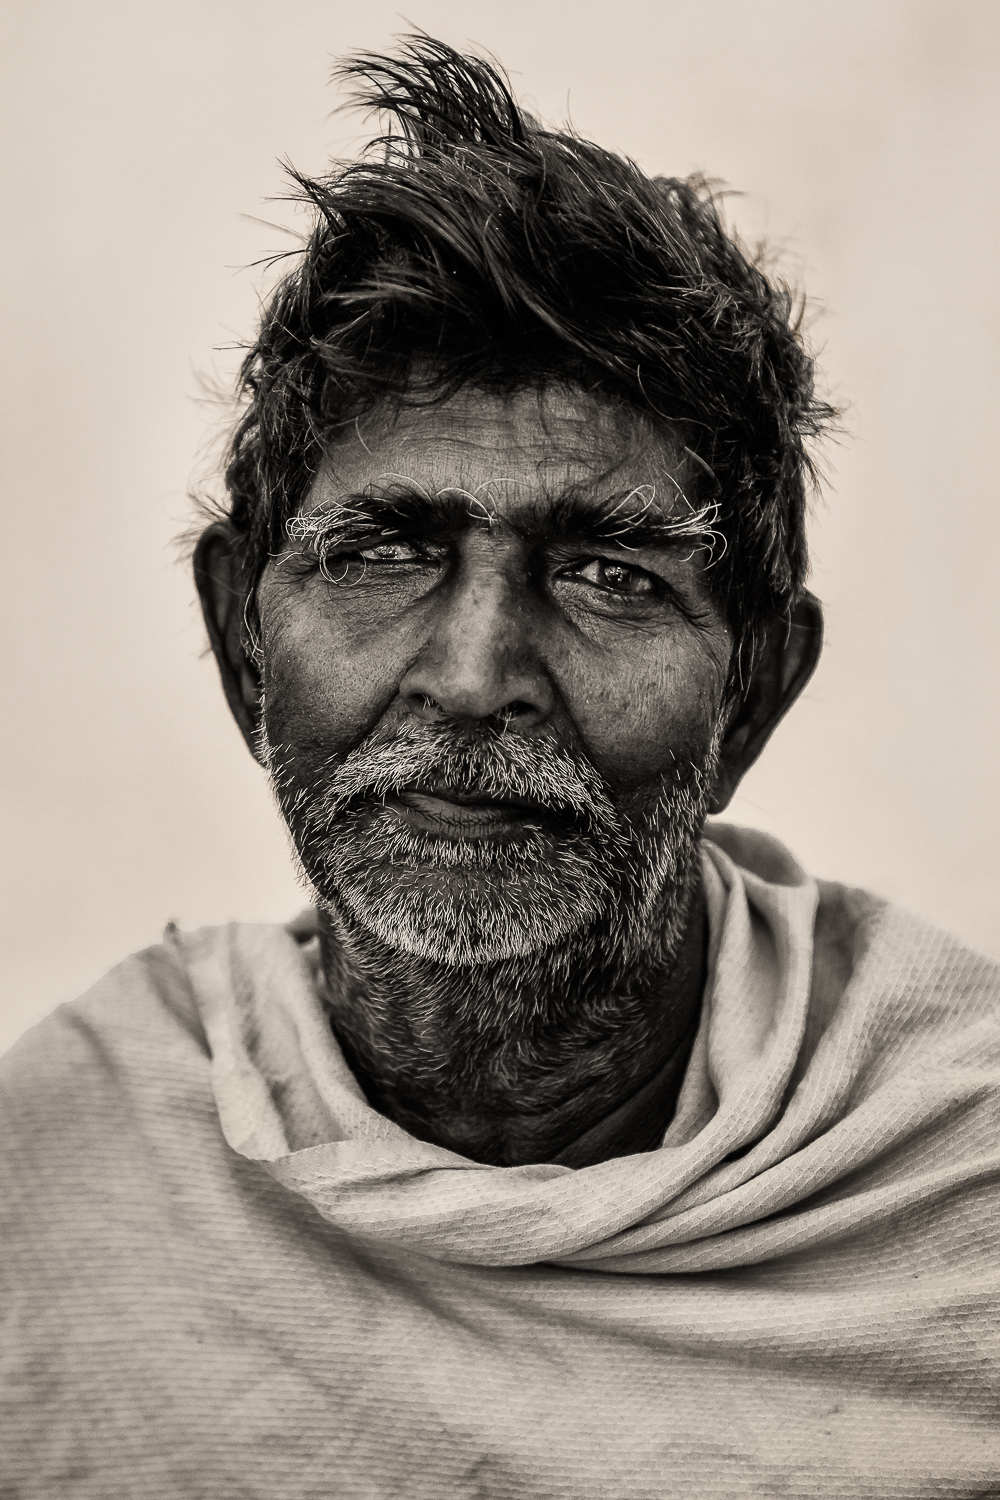 The look of    a life very much lived    in the eyes of this dignified man in    Chennai, India